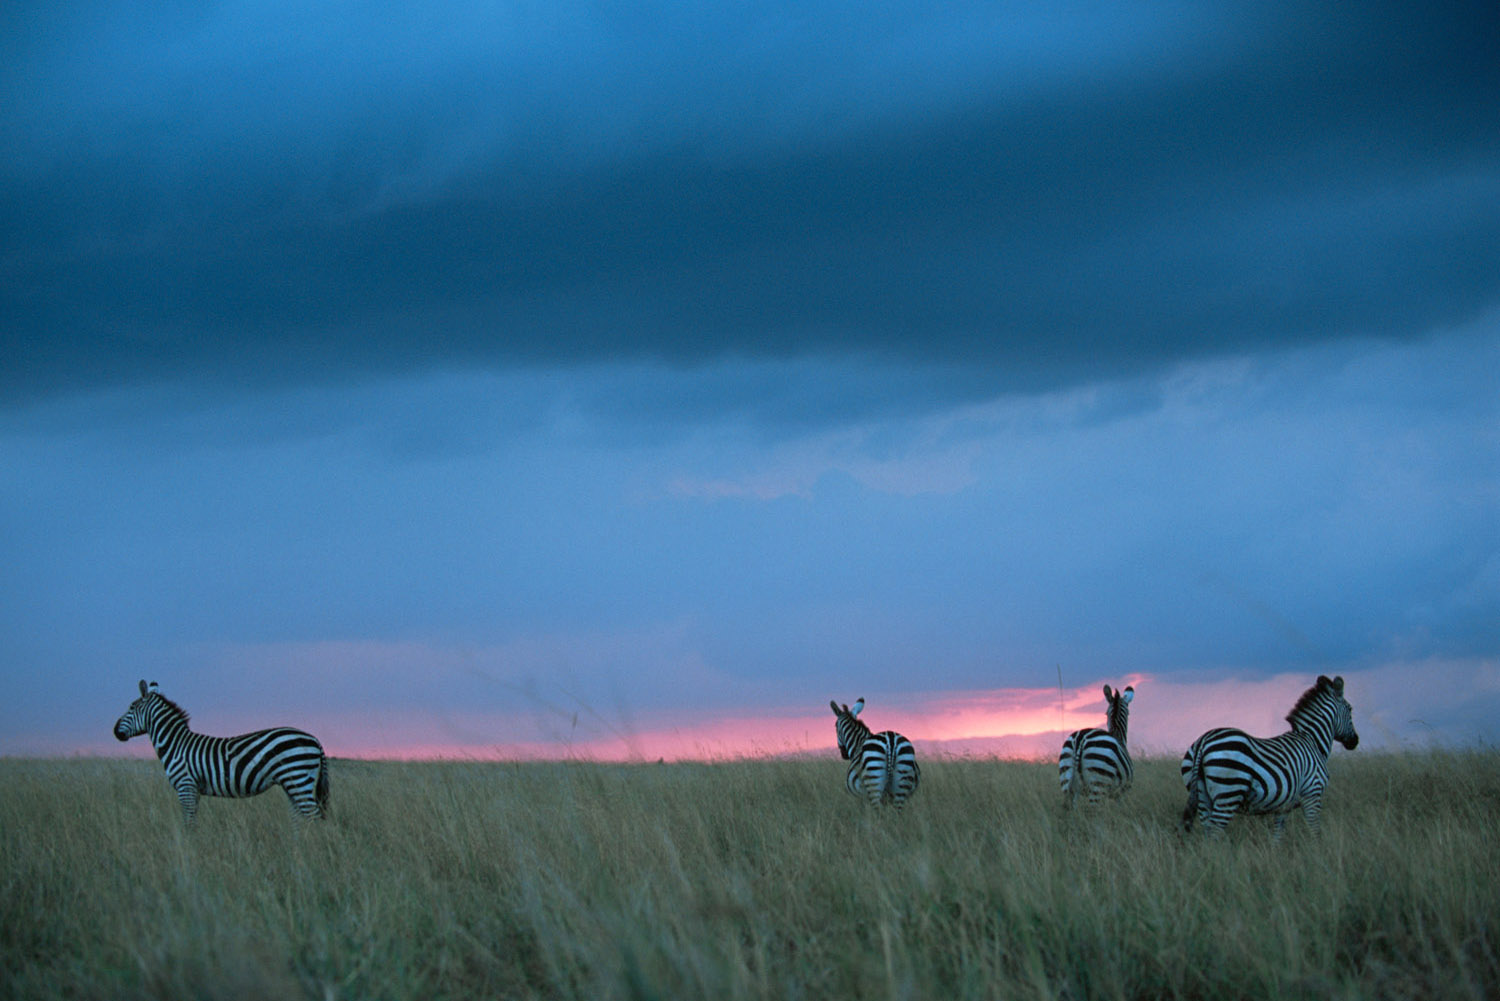 Common zebras at twilight with storm cloud, Masai Mara National Reserve, Kenya